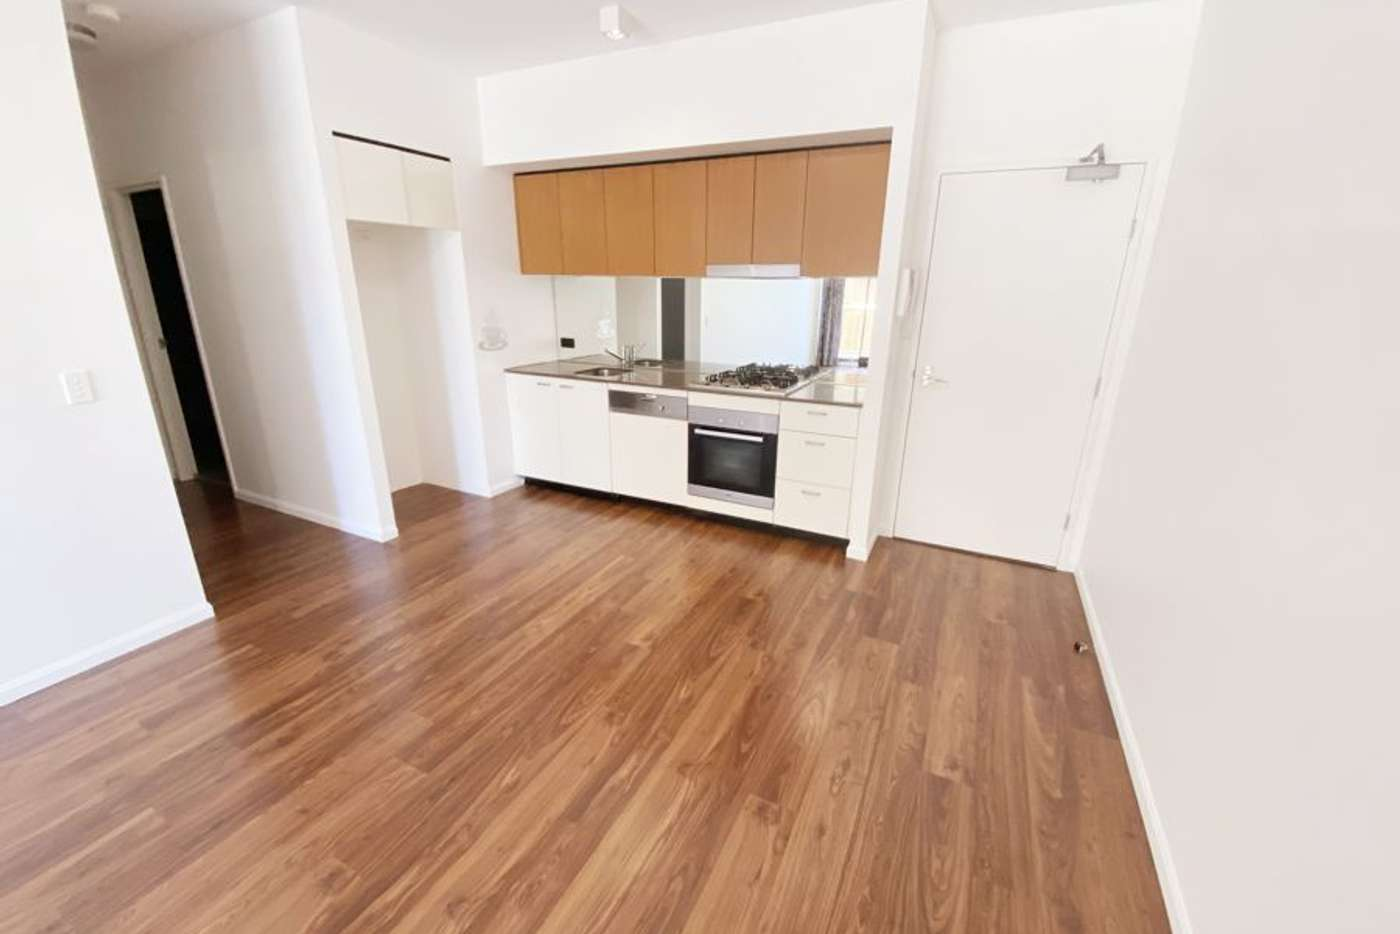 Main view of Homely apartment listing, 17 Gadigal Avenue, Zetland NSW 2017